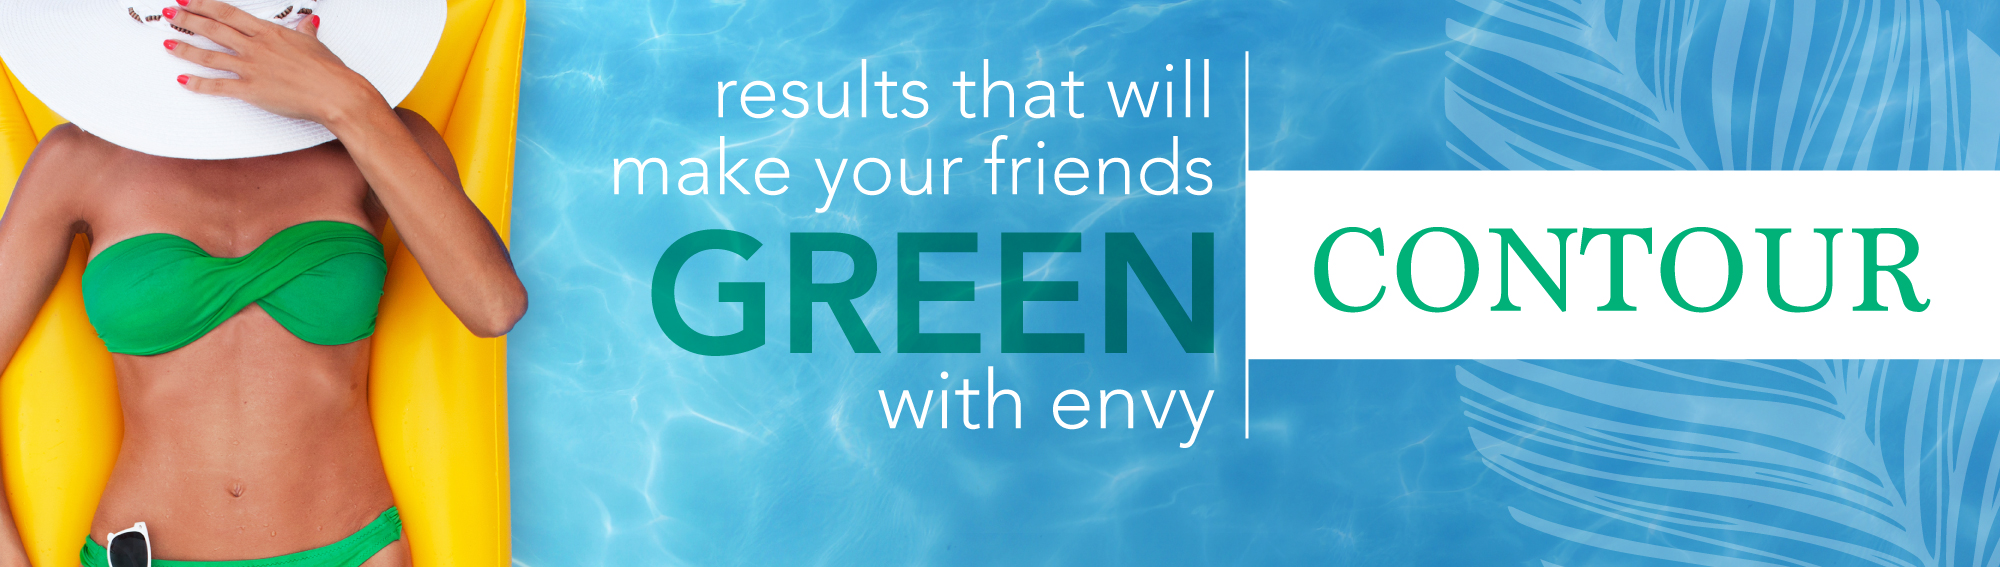 Results that will make your friends GREEN with envy